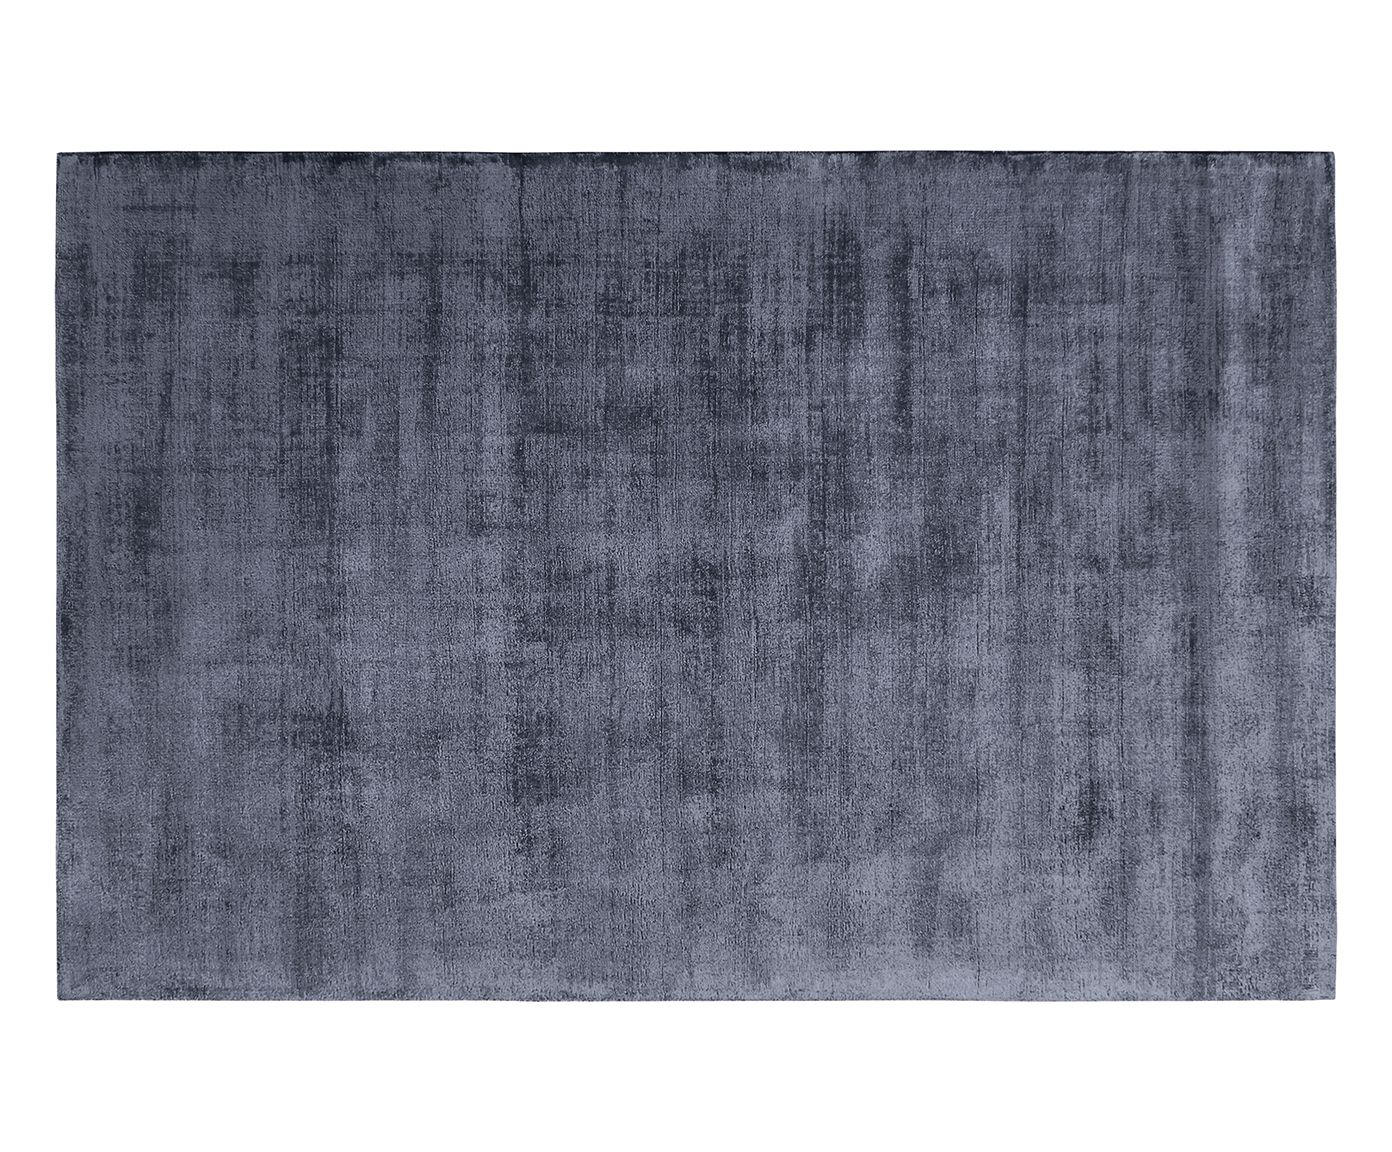 Tapete Indiano Seaburry Azul - 250X350cm | Westwing.com.br